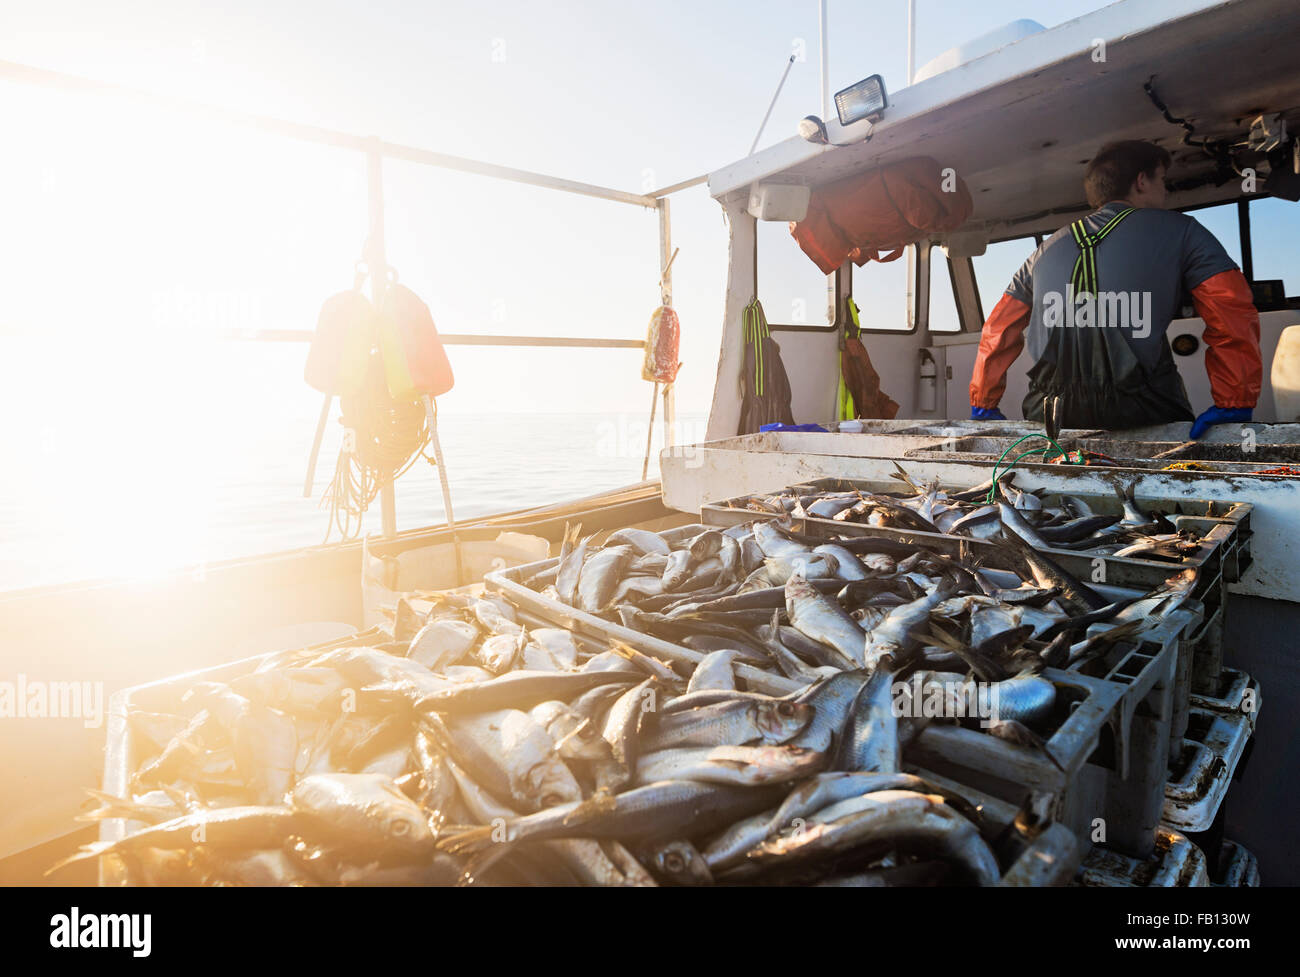 Crates of fish on boat with fisherman standing in background - Stock Image